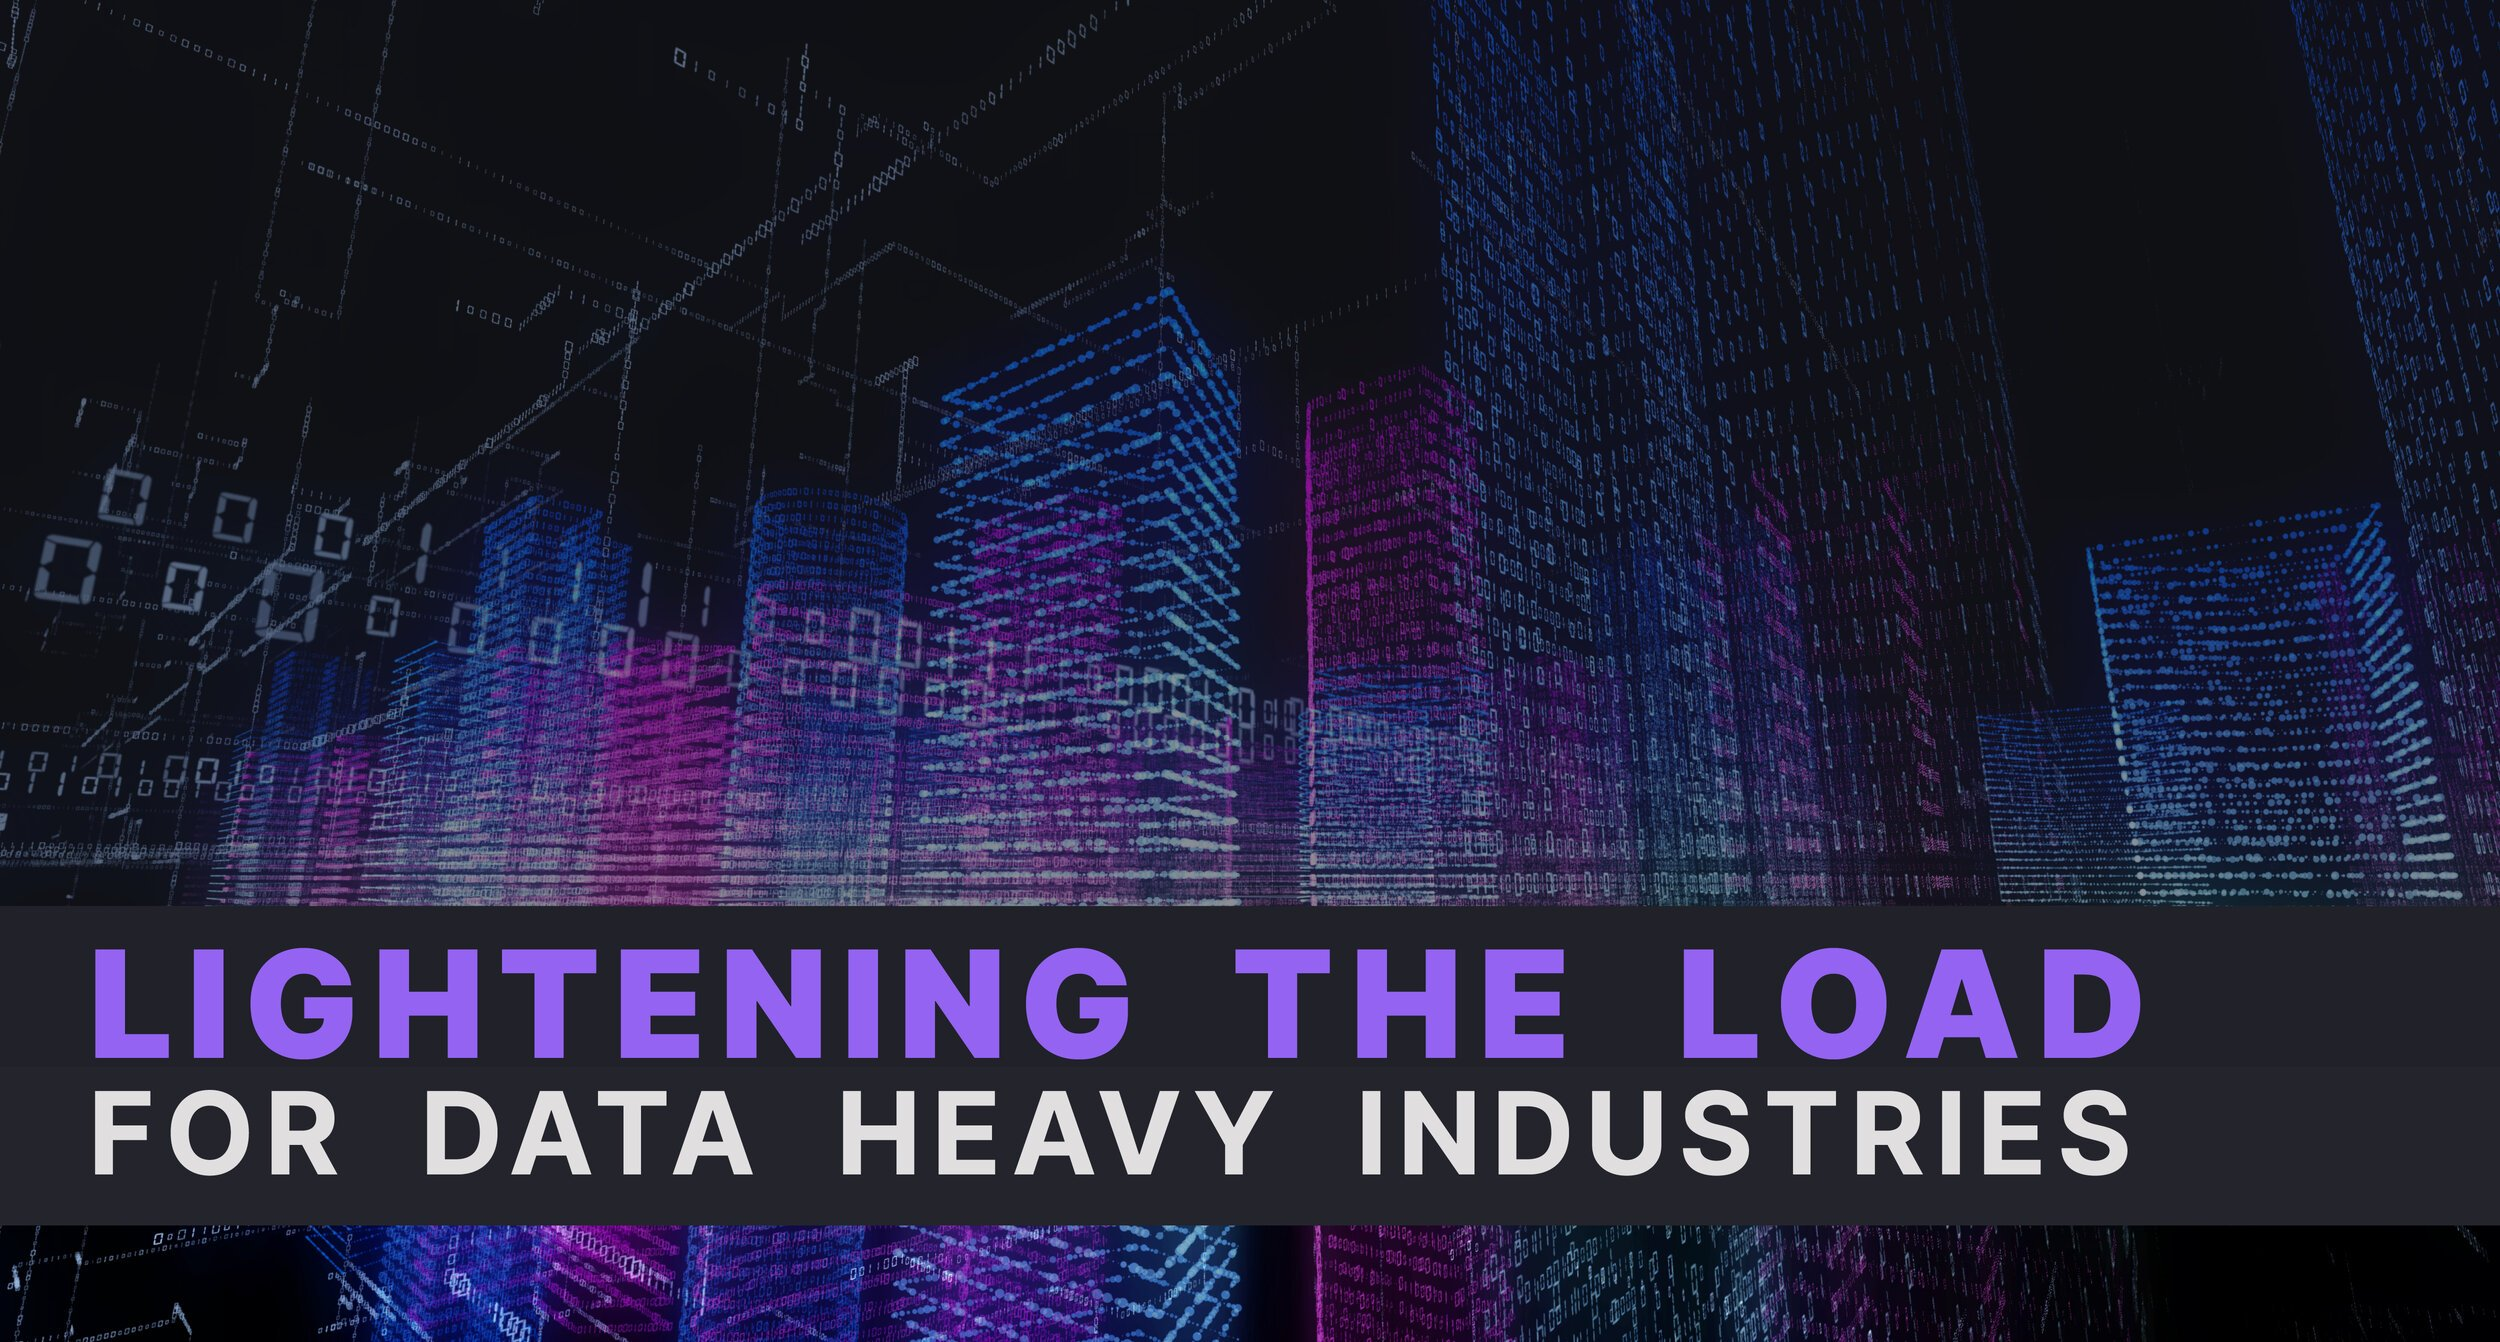 Lightening the load for data-heavy industries